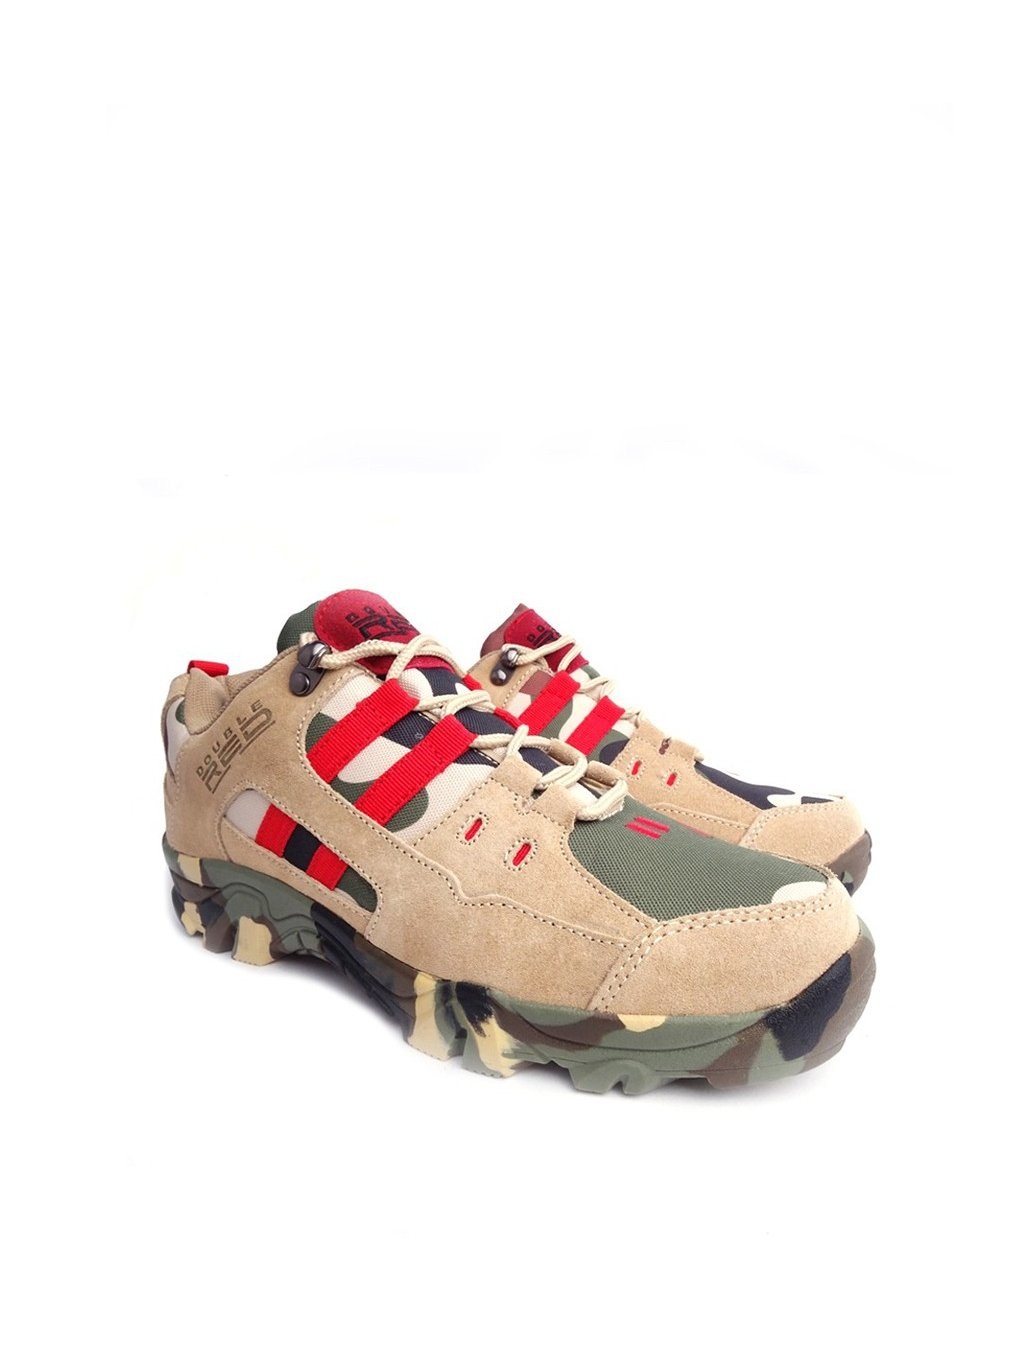 DOUBLE RED Boty Red Hero Soldier Edition Green/Sand